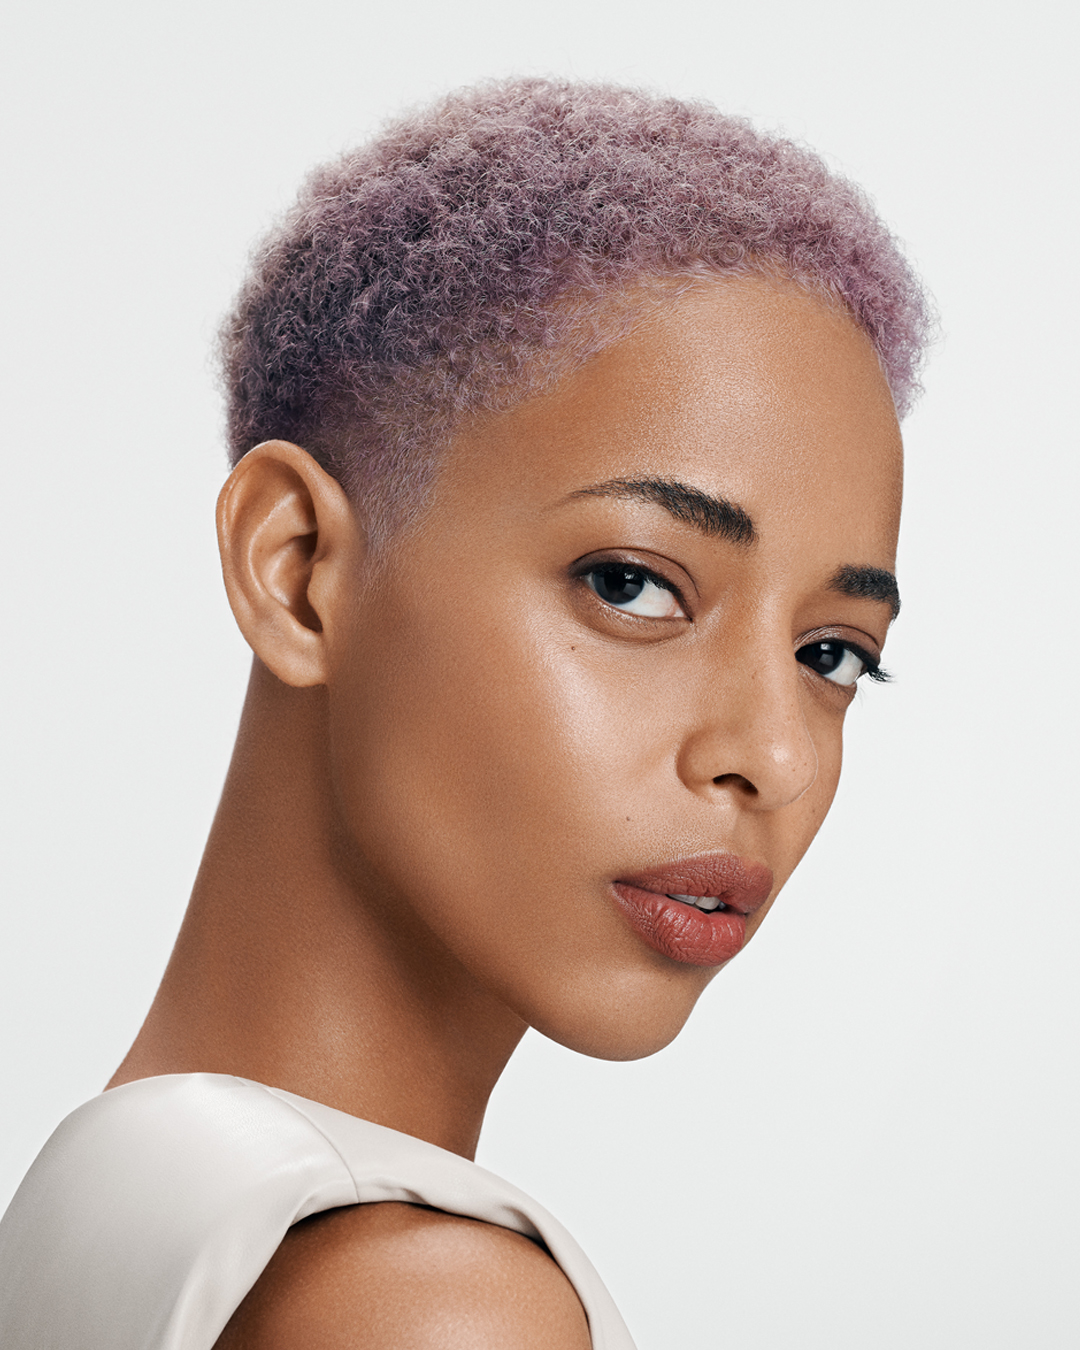 Goldwell Announces Their Color of the Year: Lilac Aura